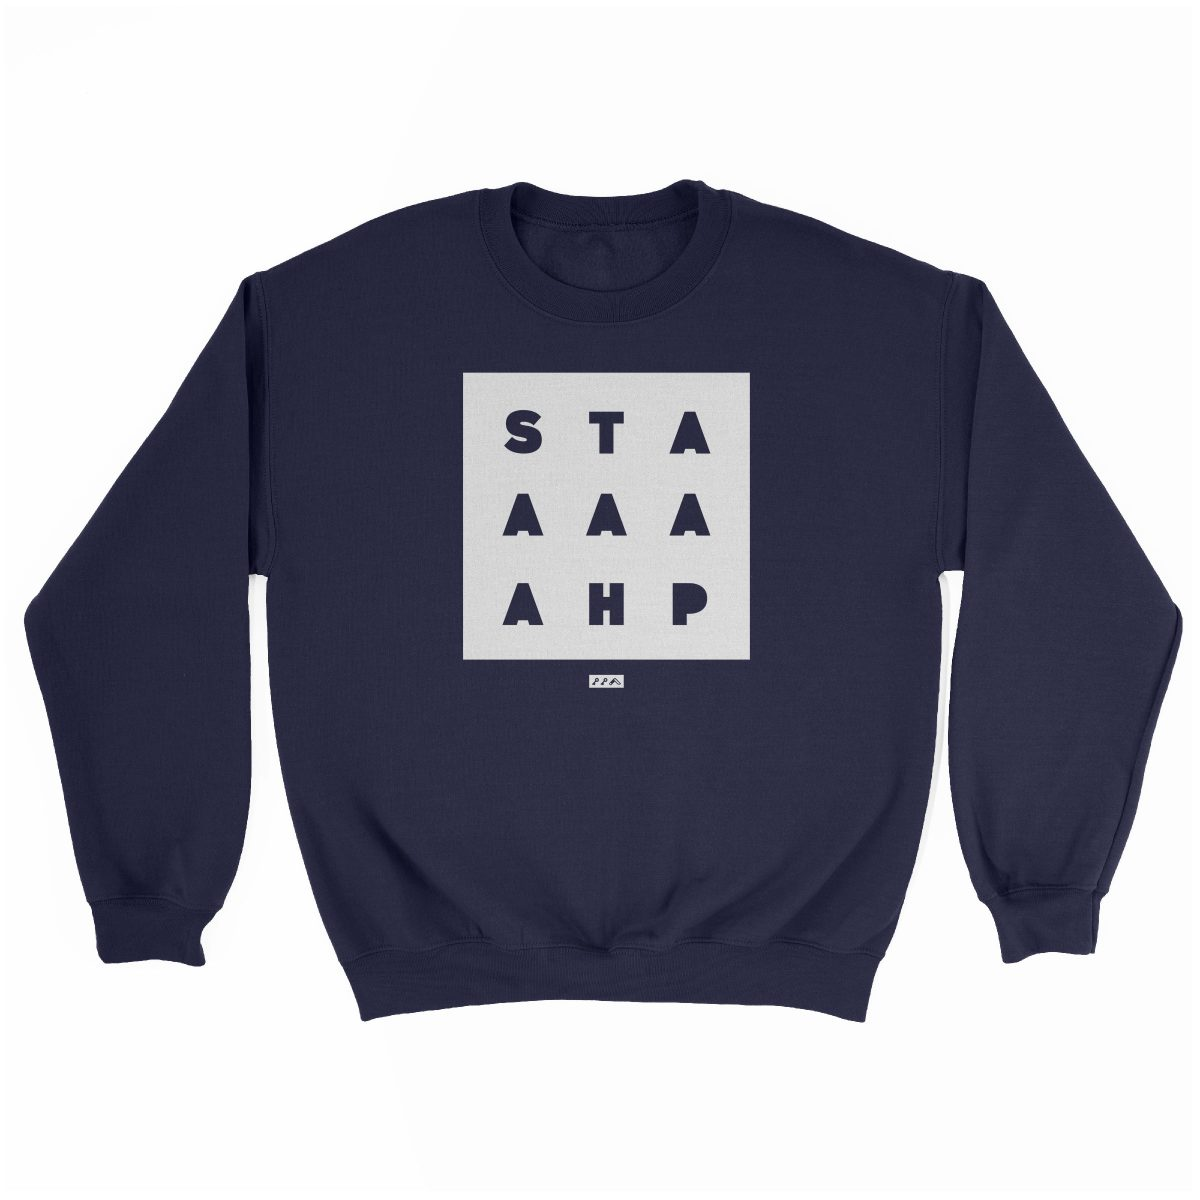 """STAAAAAHP"" funny philly slang sweatshirt in navy"